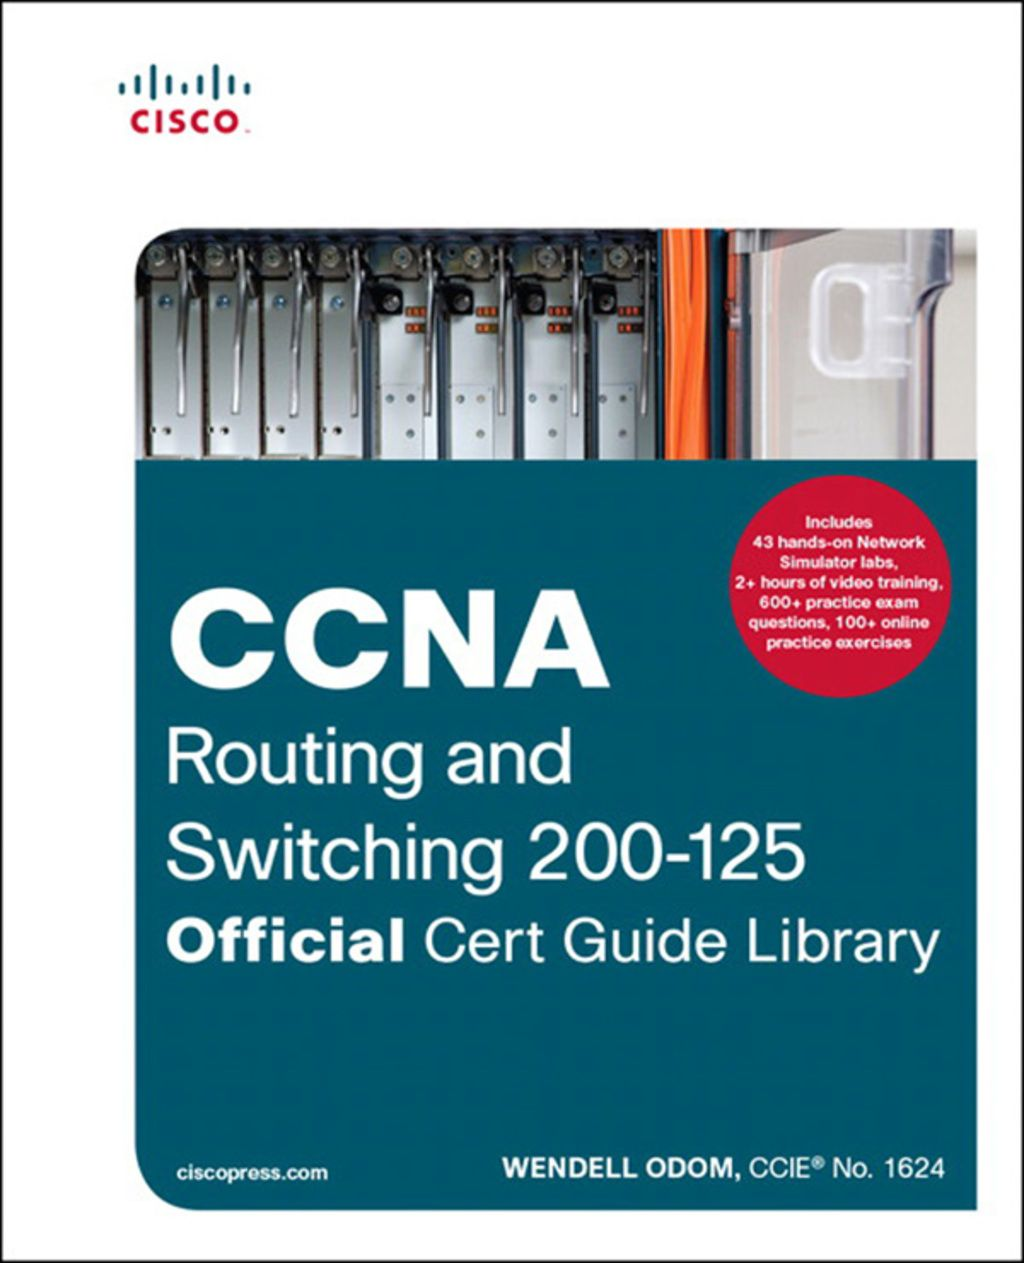 CCNA Routing and Switching 200-125 Official Cert Guide